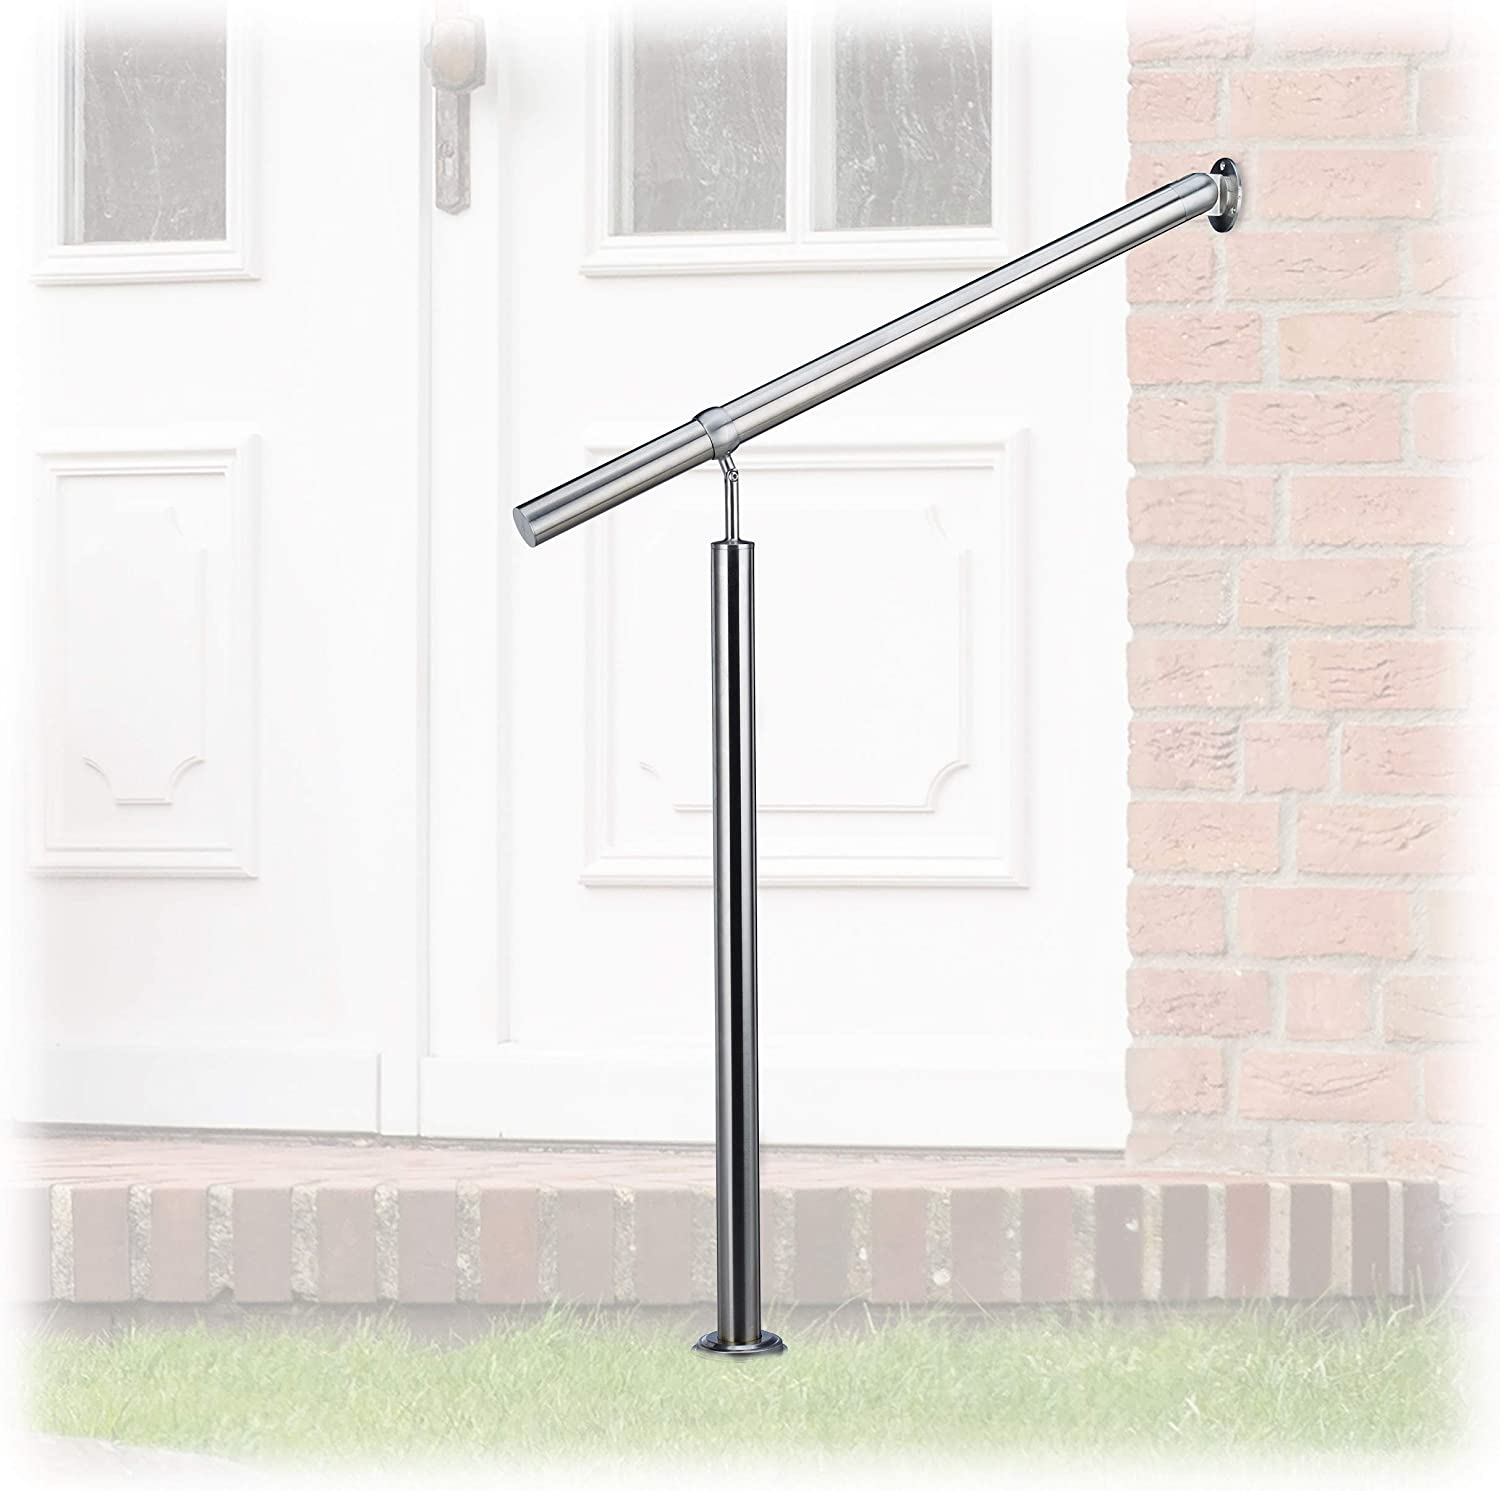 Relaxdays Stainless Steel Handrail for in-and Outdoor Use, with Wall Fittings and Metal Plugs, 80 x 90 cm, Silver